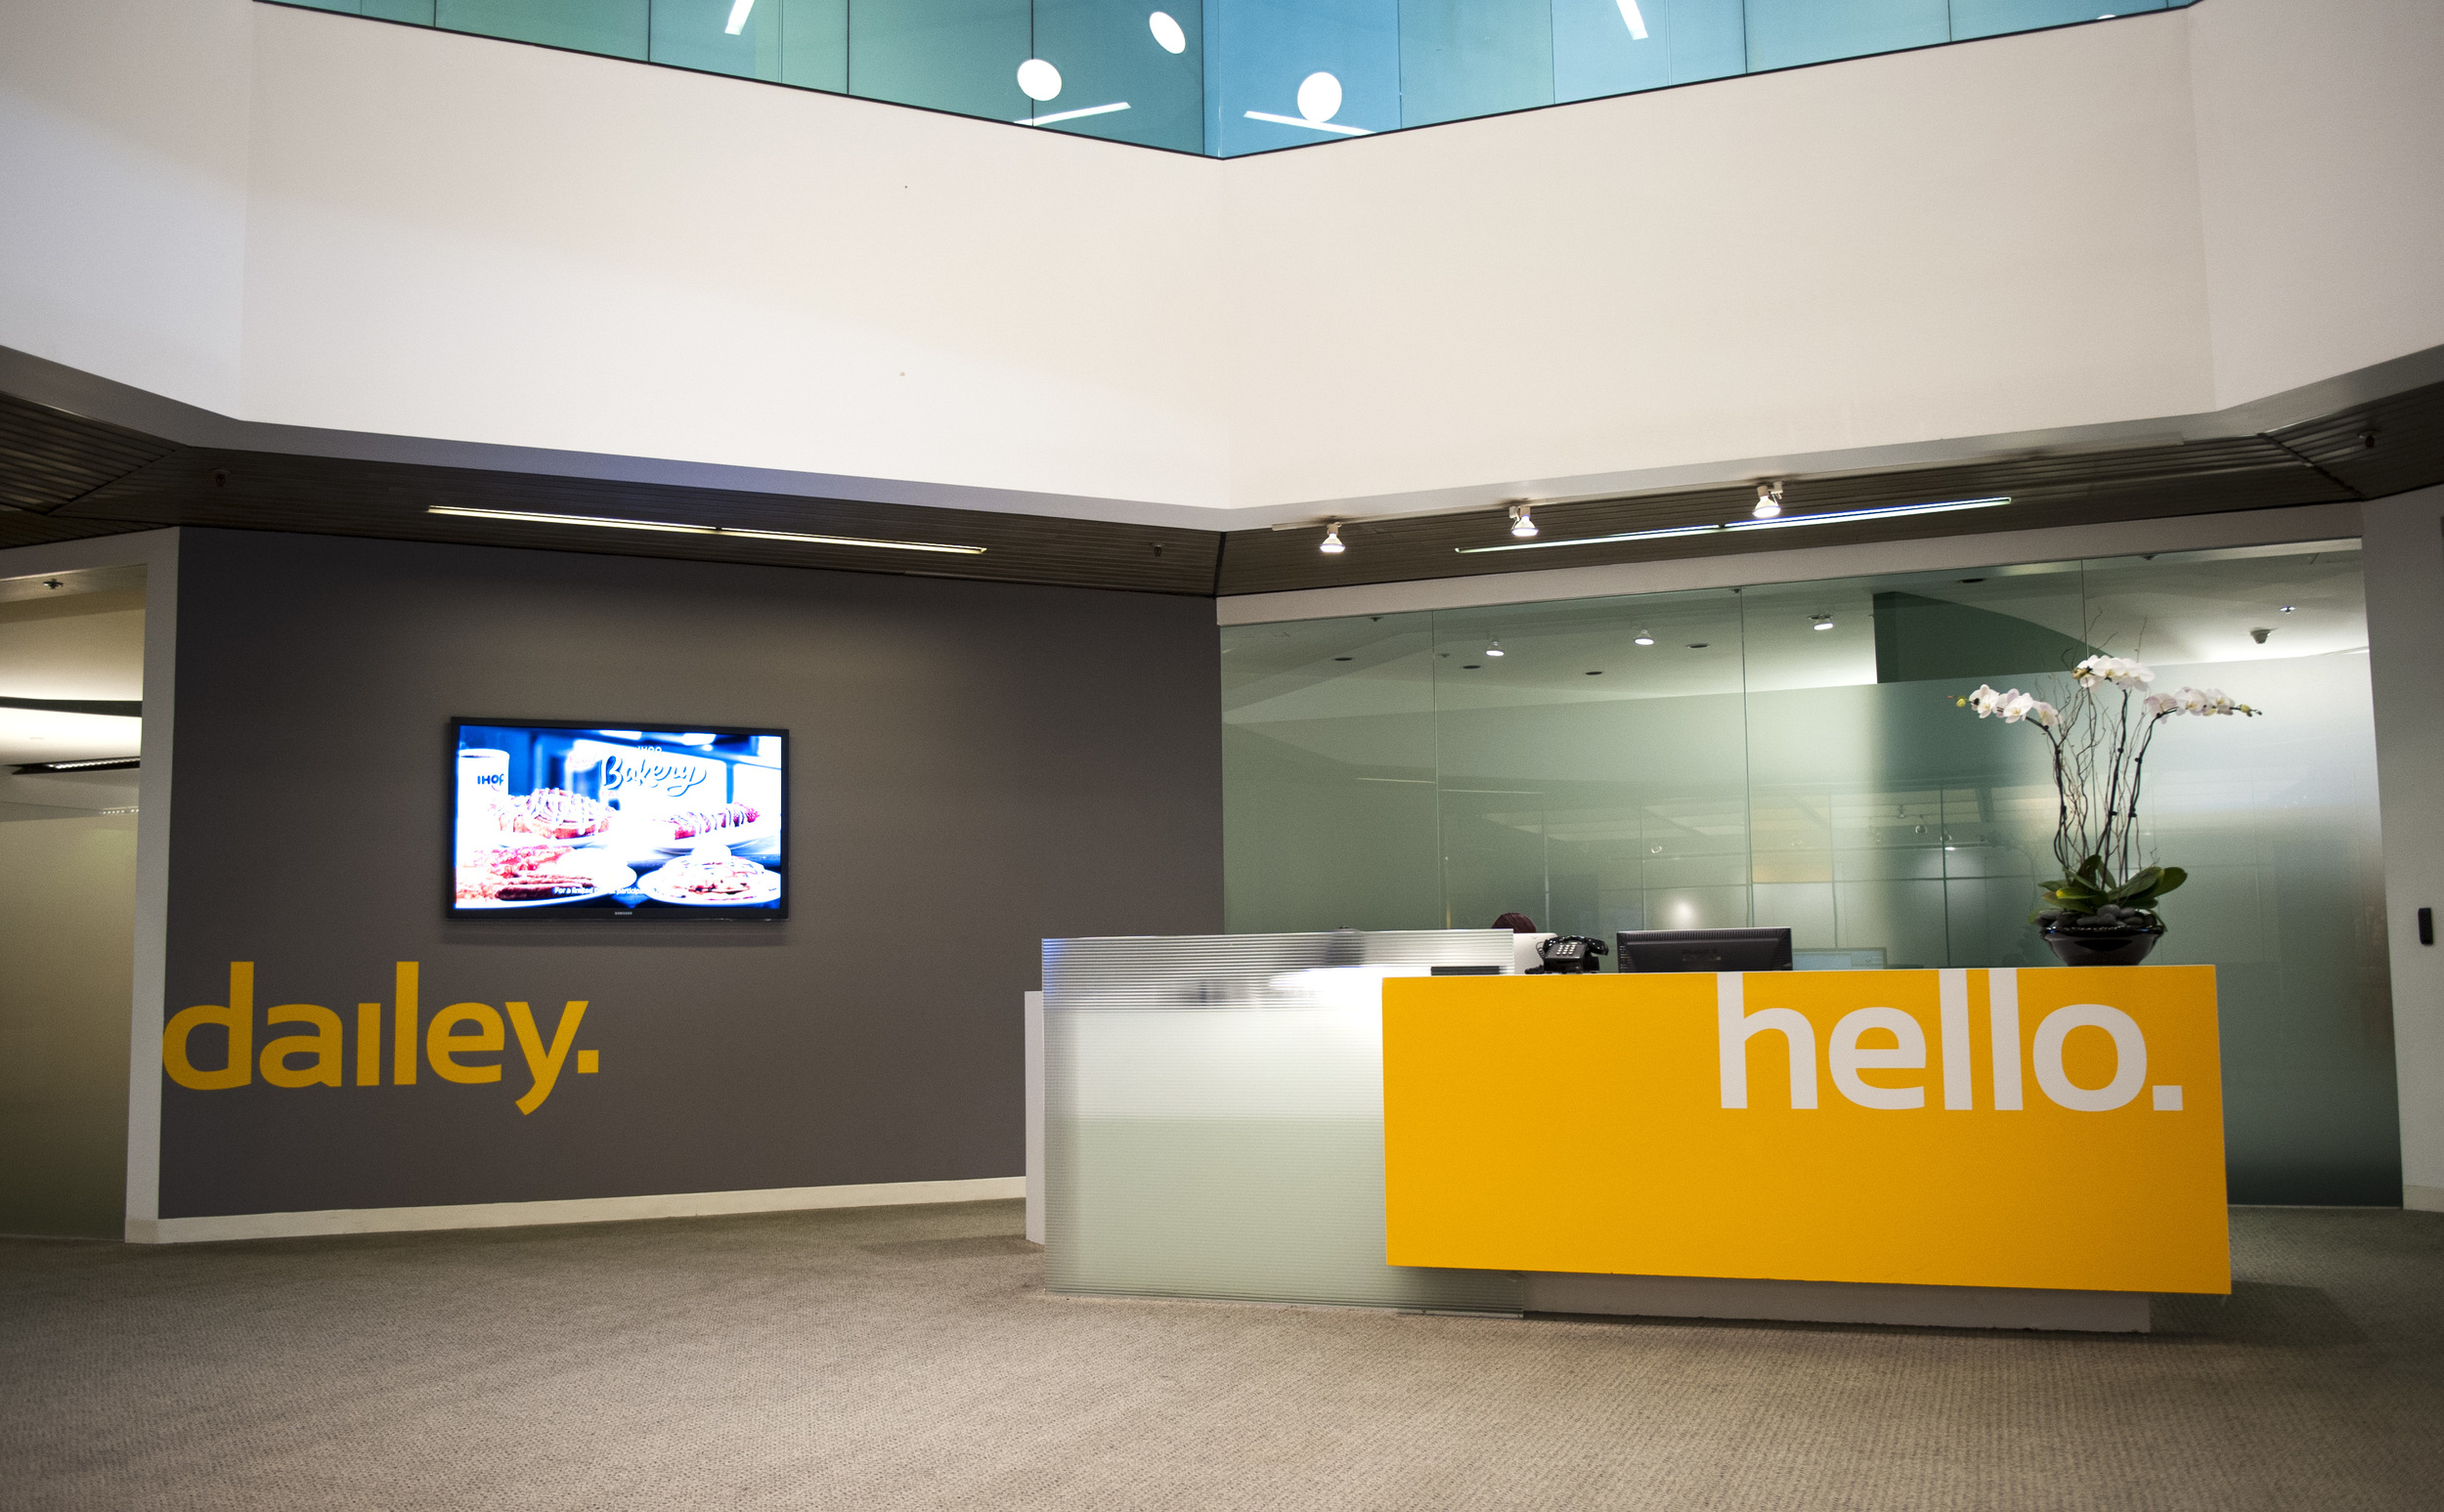 Main reception area was rebranded with new logo and color scheme.